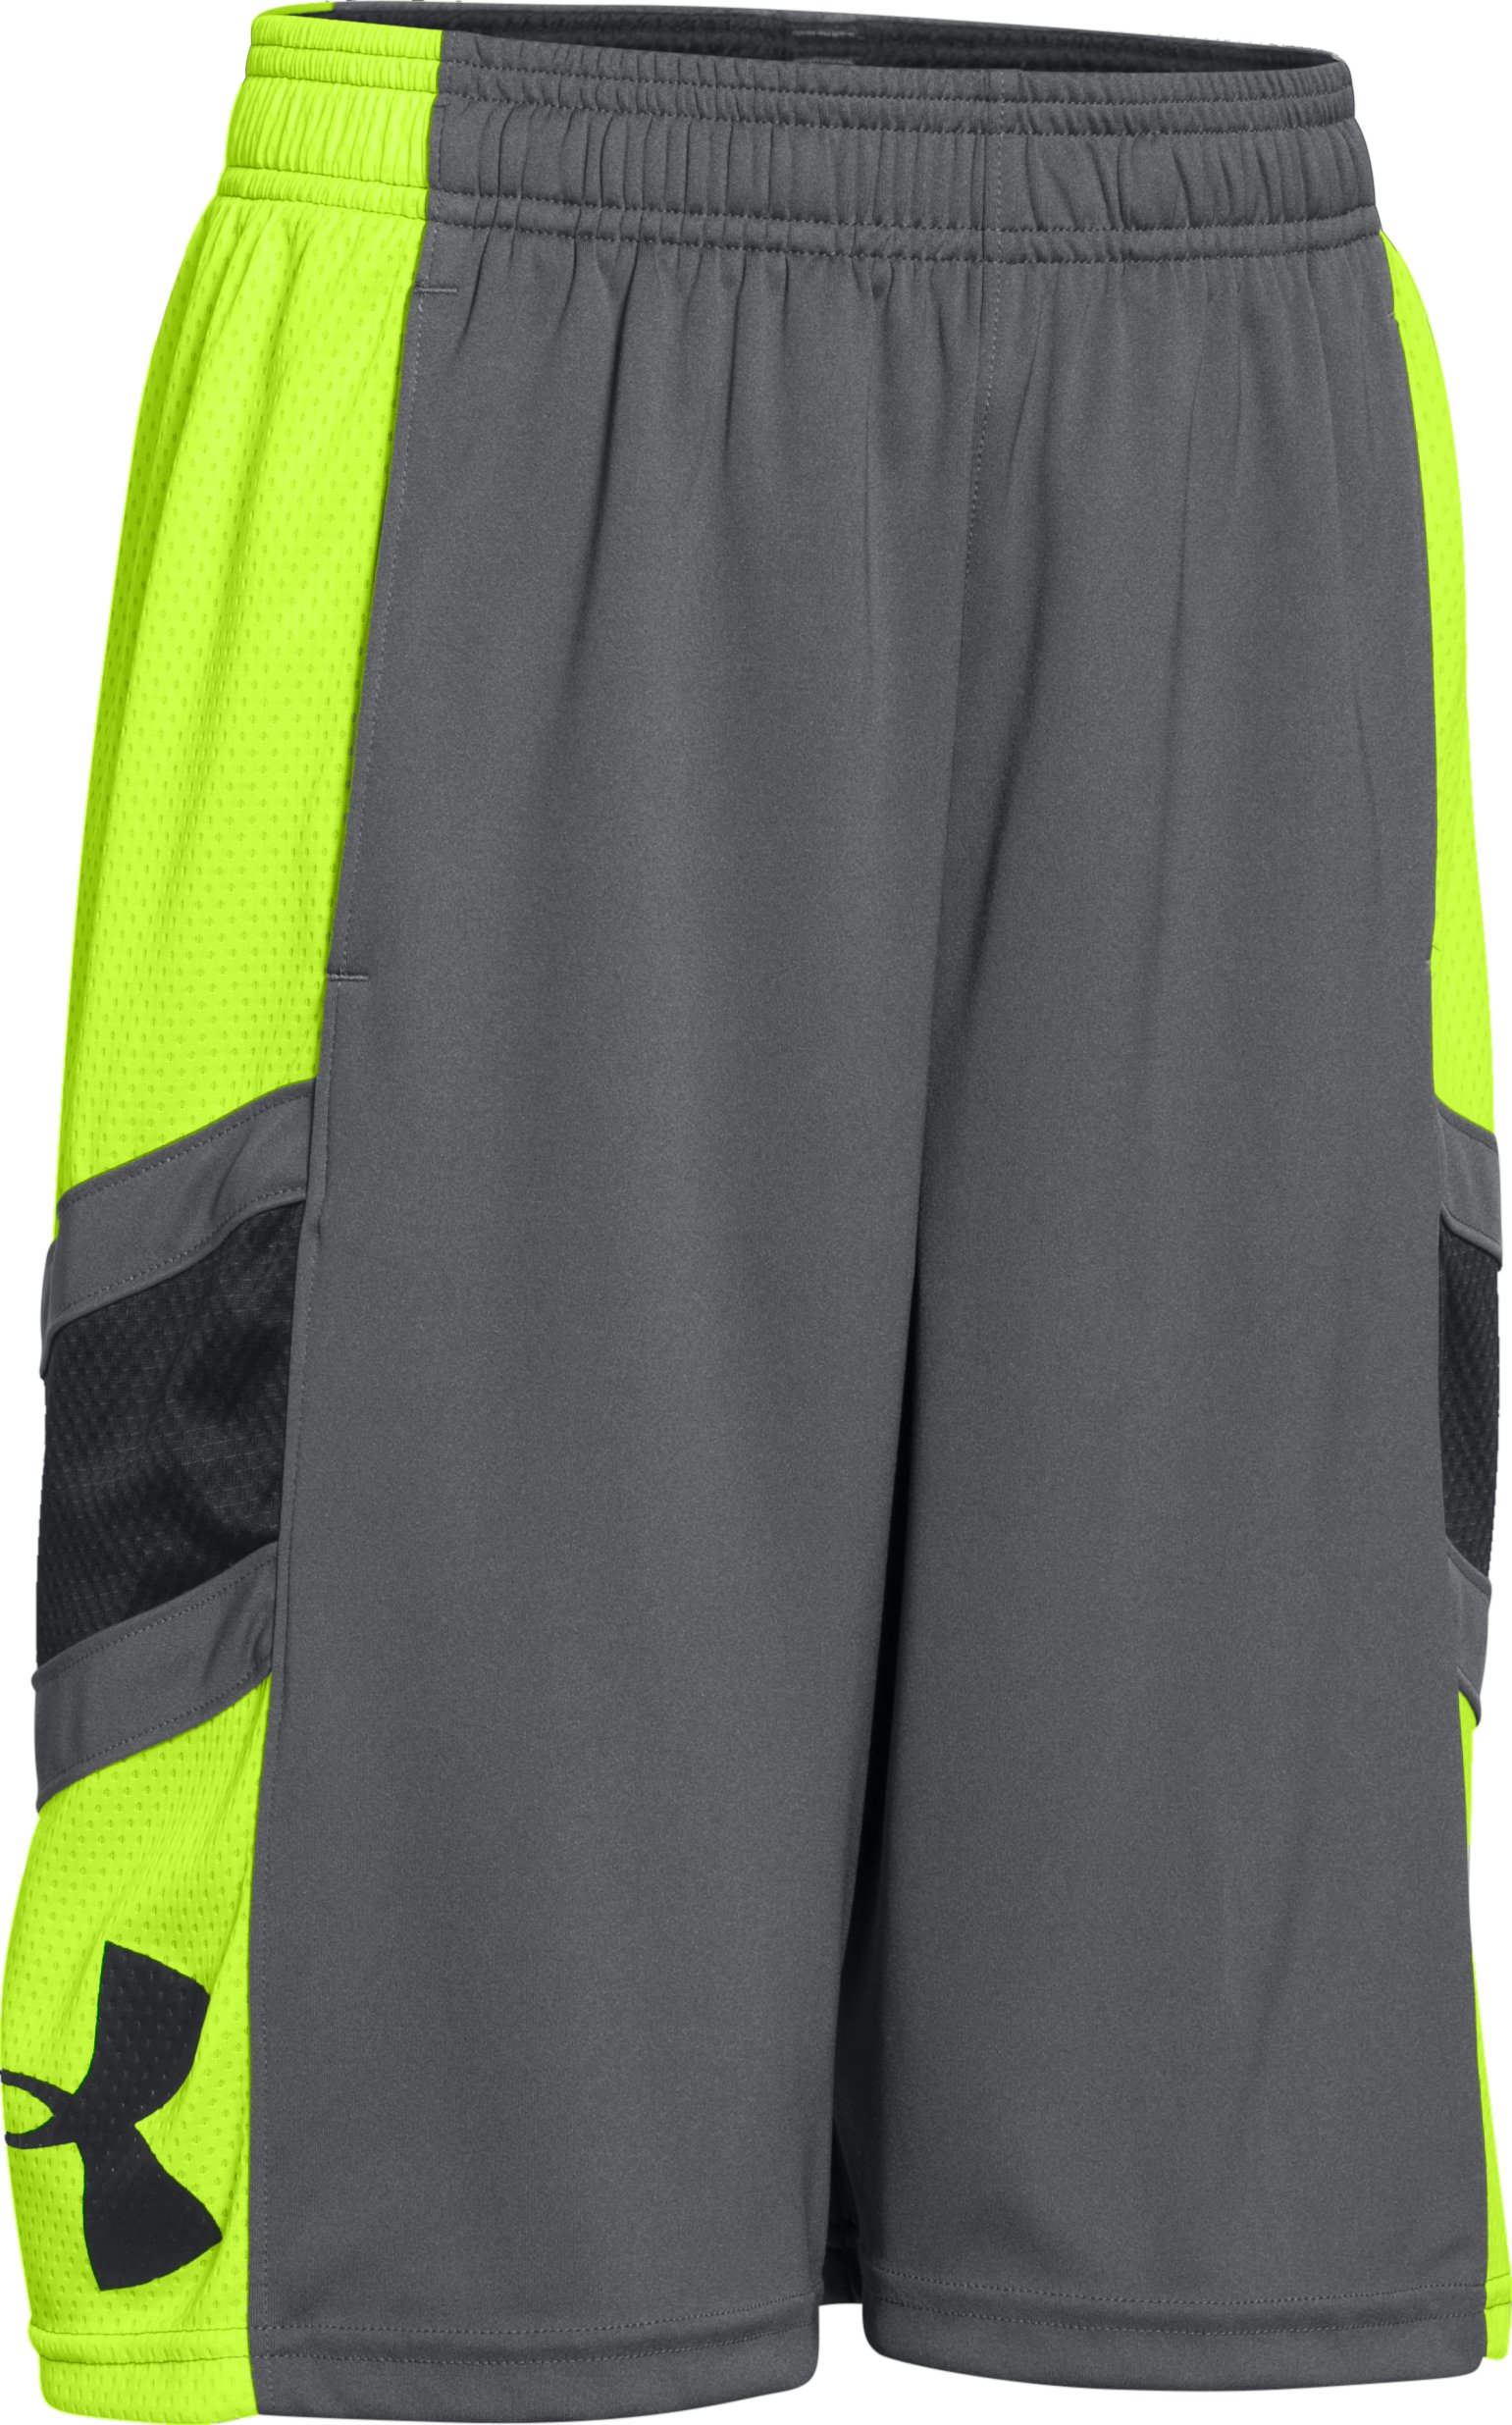 Boys' UA Crossover Basketball Shorts, Graphite, undefined